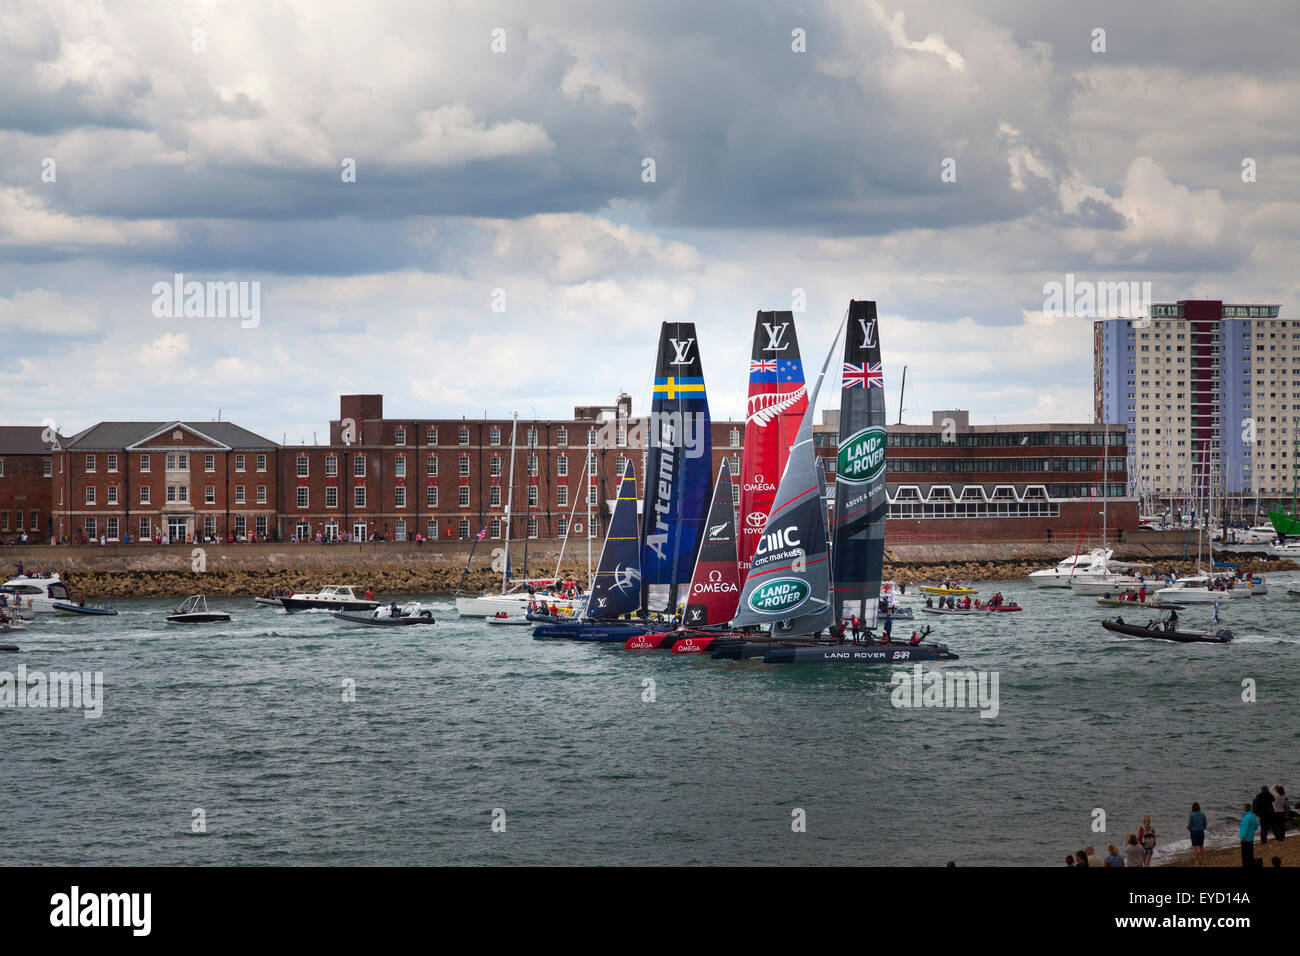 Admirals Cup races off Portsmouth on Saturday 25 July 2015 The racing yachts exit portsmouth harbour together to - Stock Image